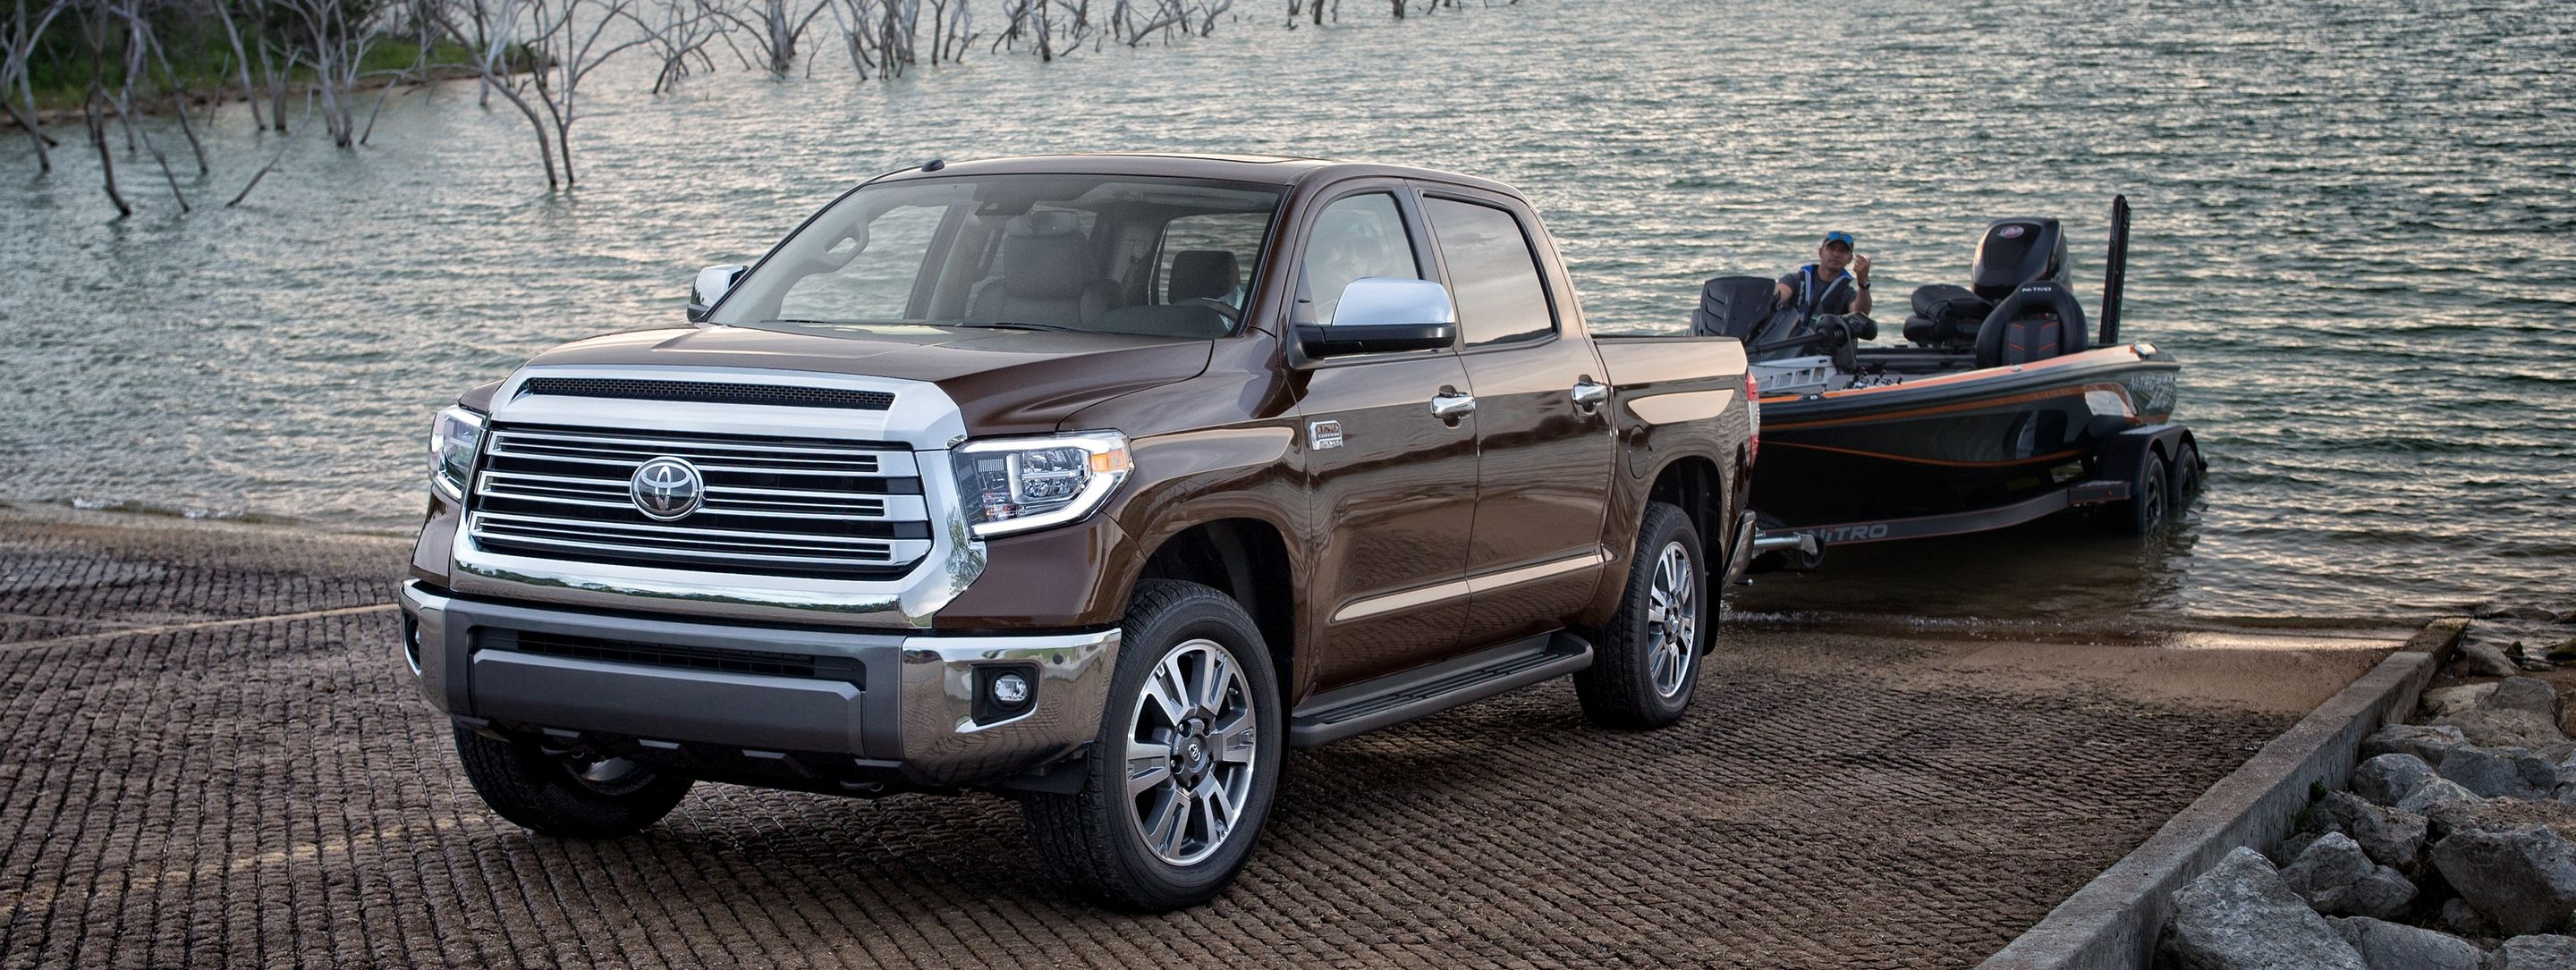 2019 Toyota Tundra for Sale near Grandview, MO